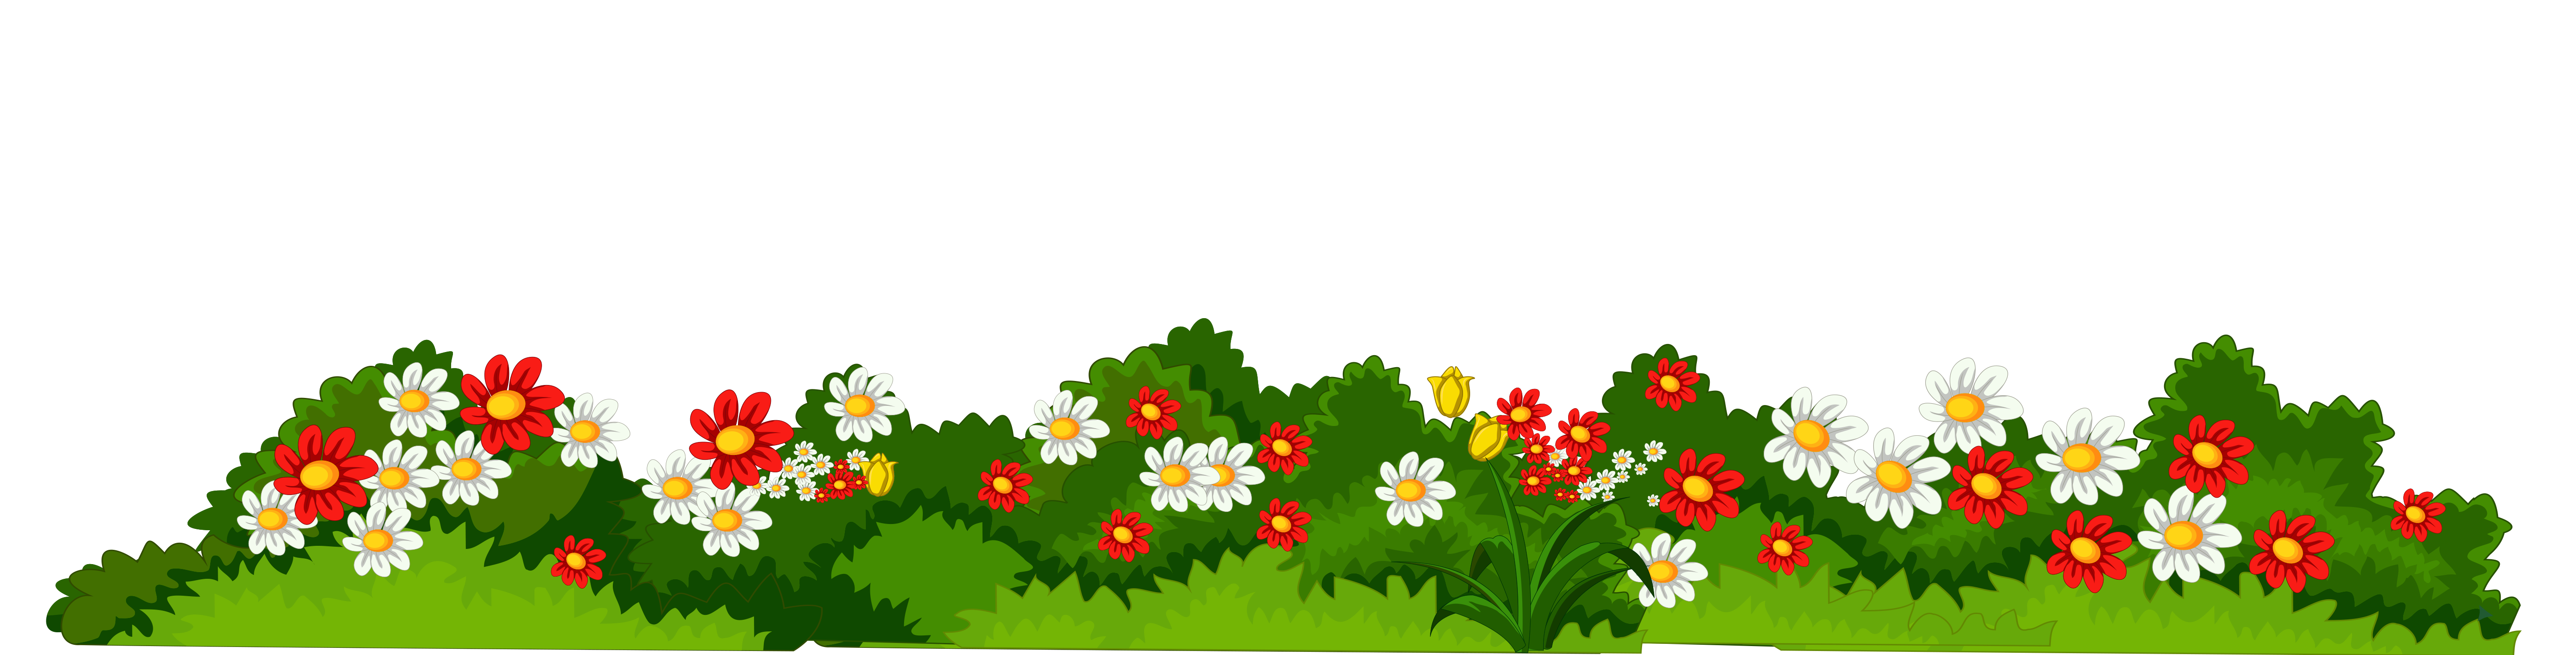 Png clipart transparent background banner freeuse download Flowers with Grass Transparent PNG Clipart banner freeuse download